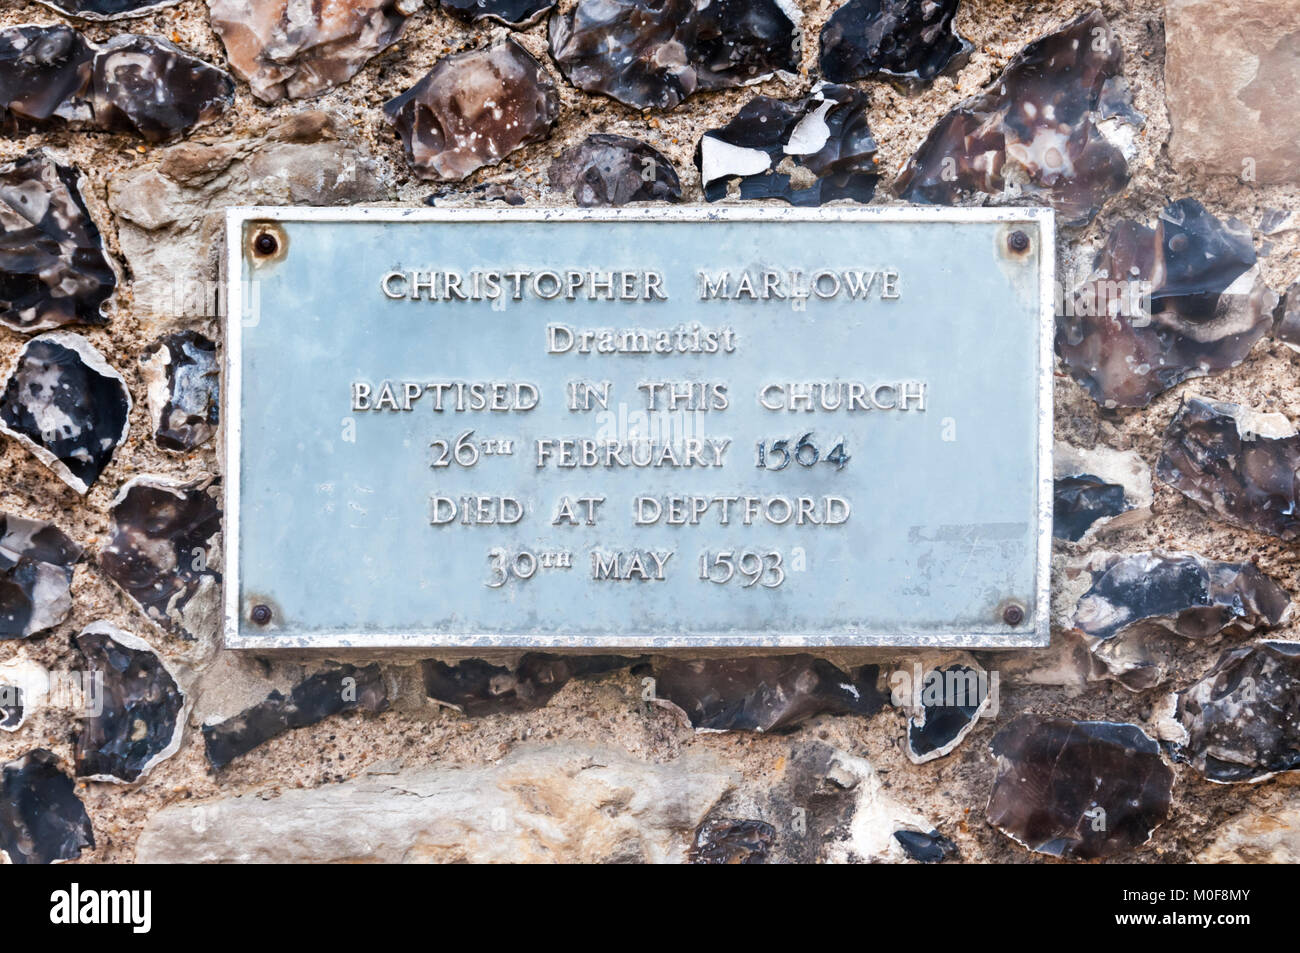 Plaque On St George's tower recording the baptism of Christopher Marlowe at the Church of St George the Martyr - Stock Image